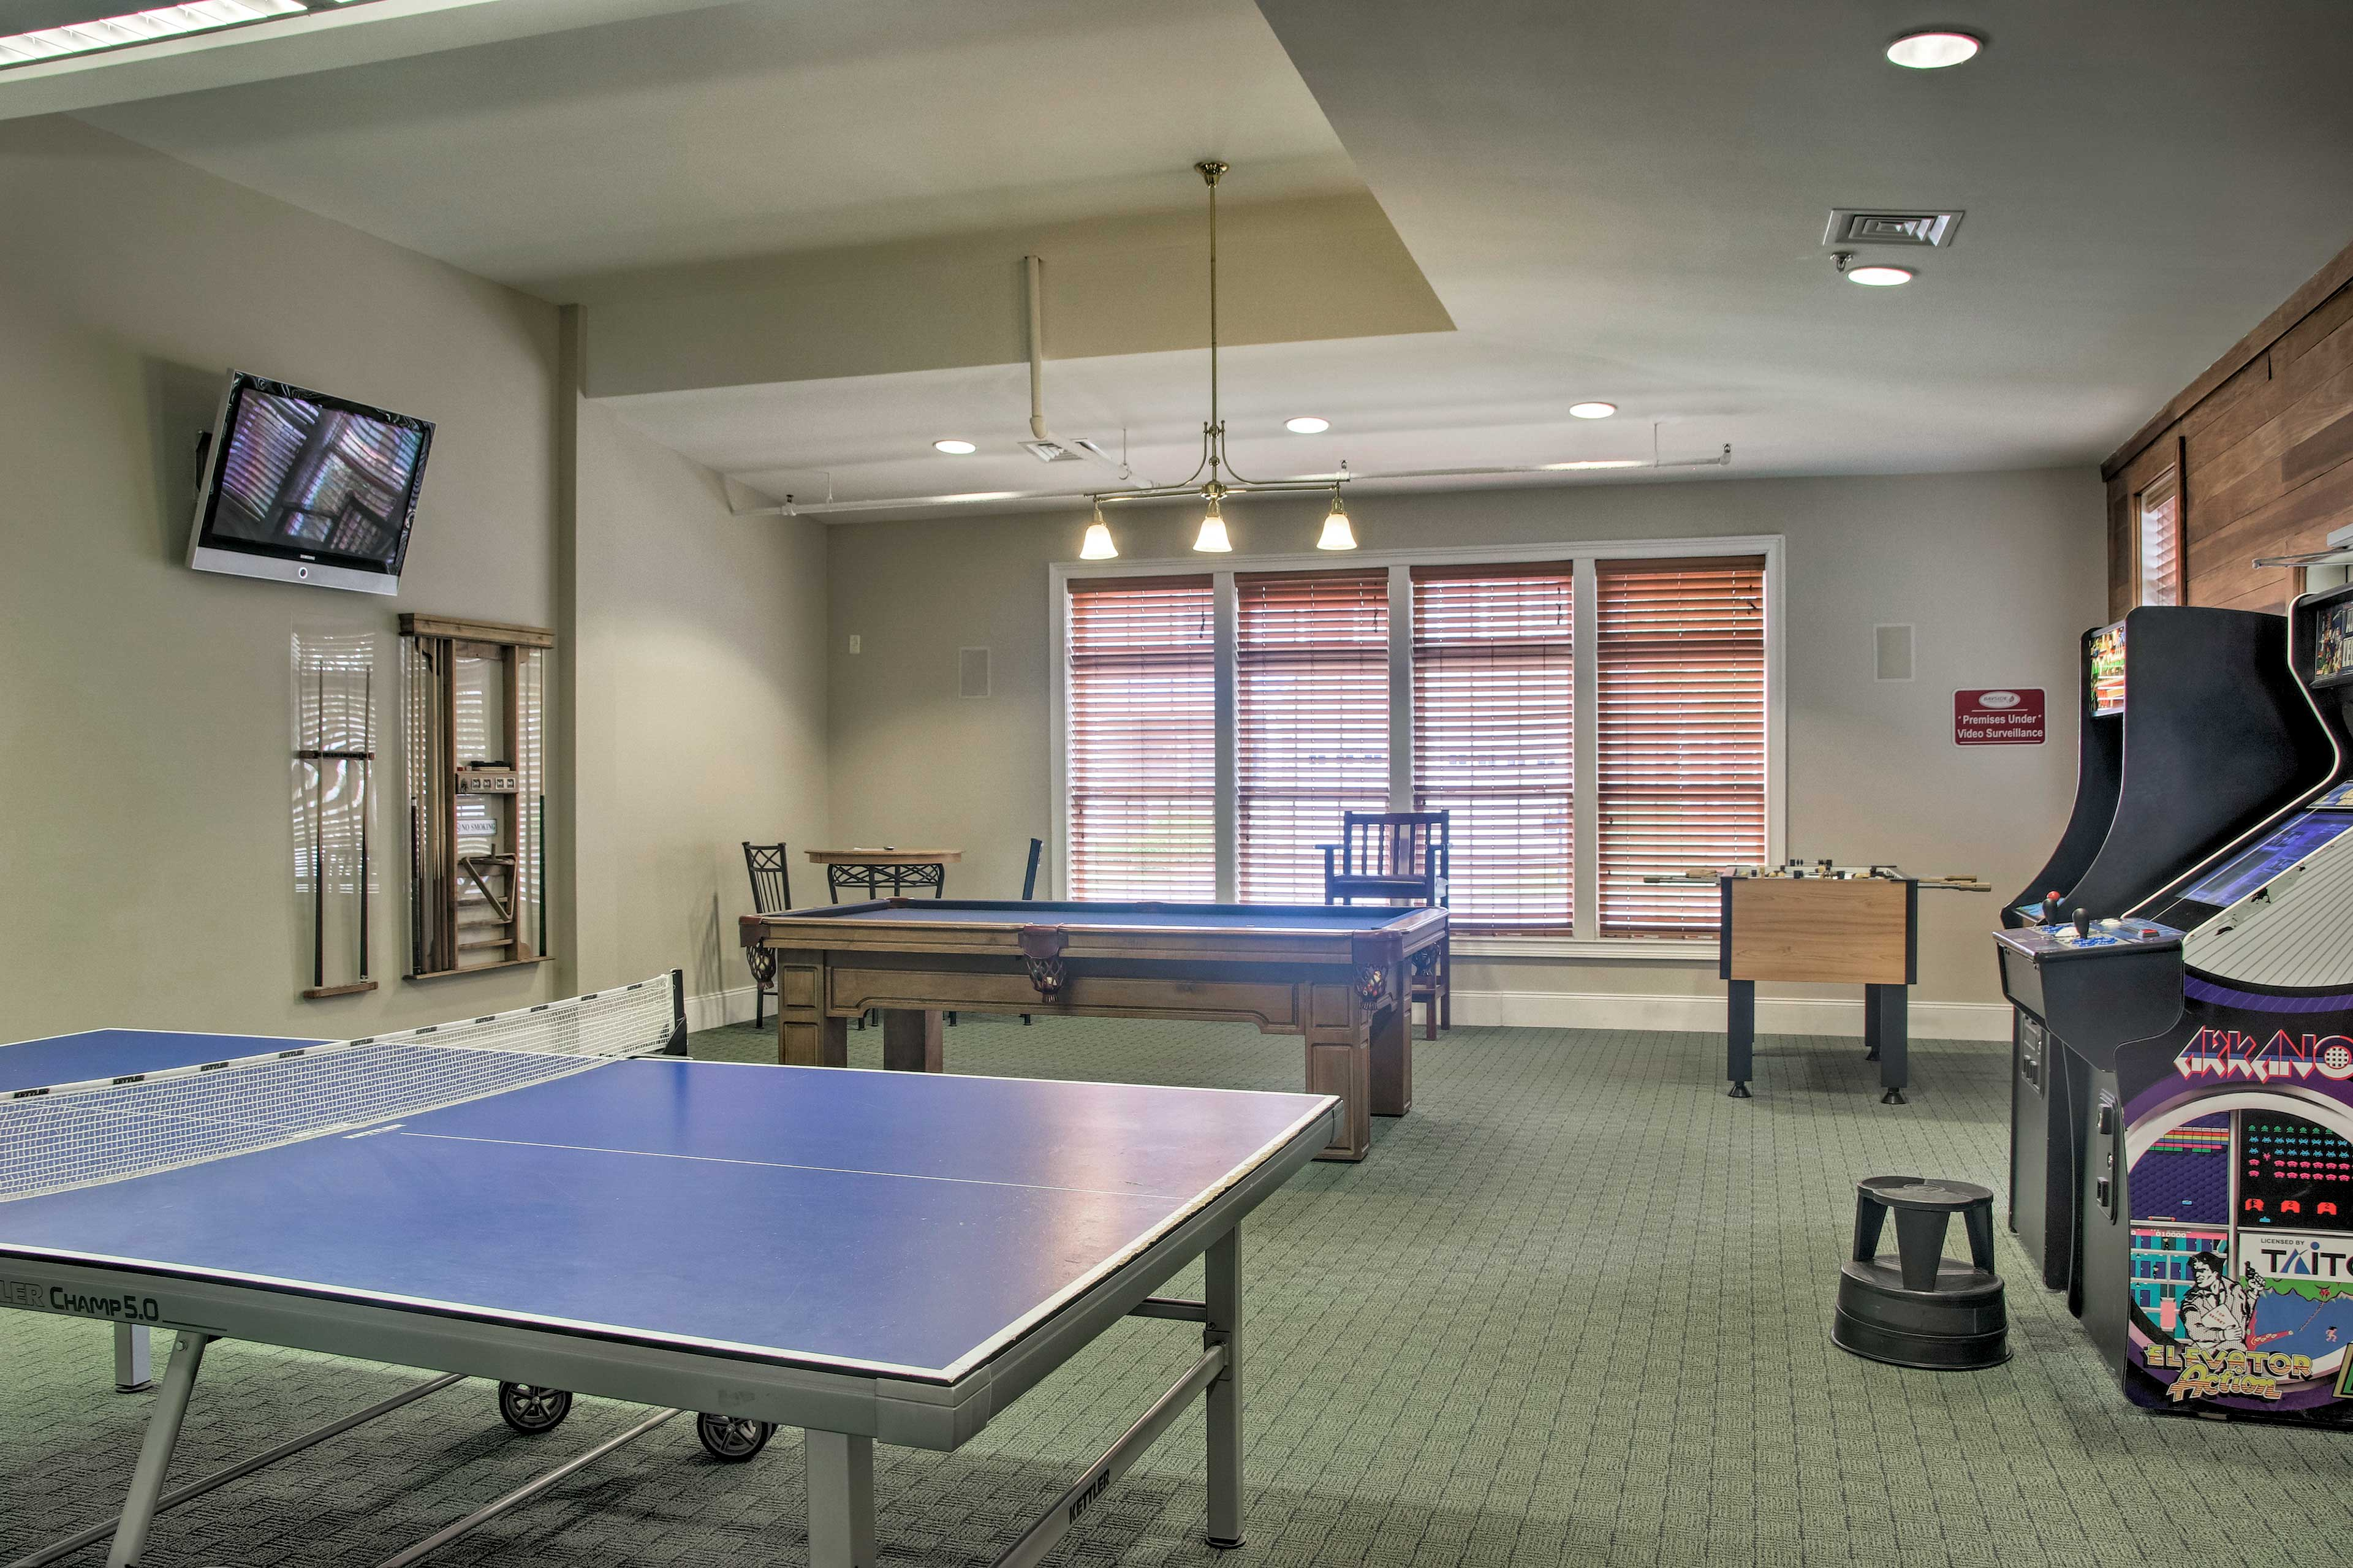 When you stay at this townhome, you'll enjoy access to a clubhouse game room!